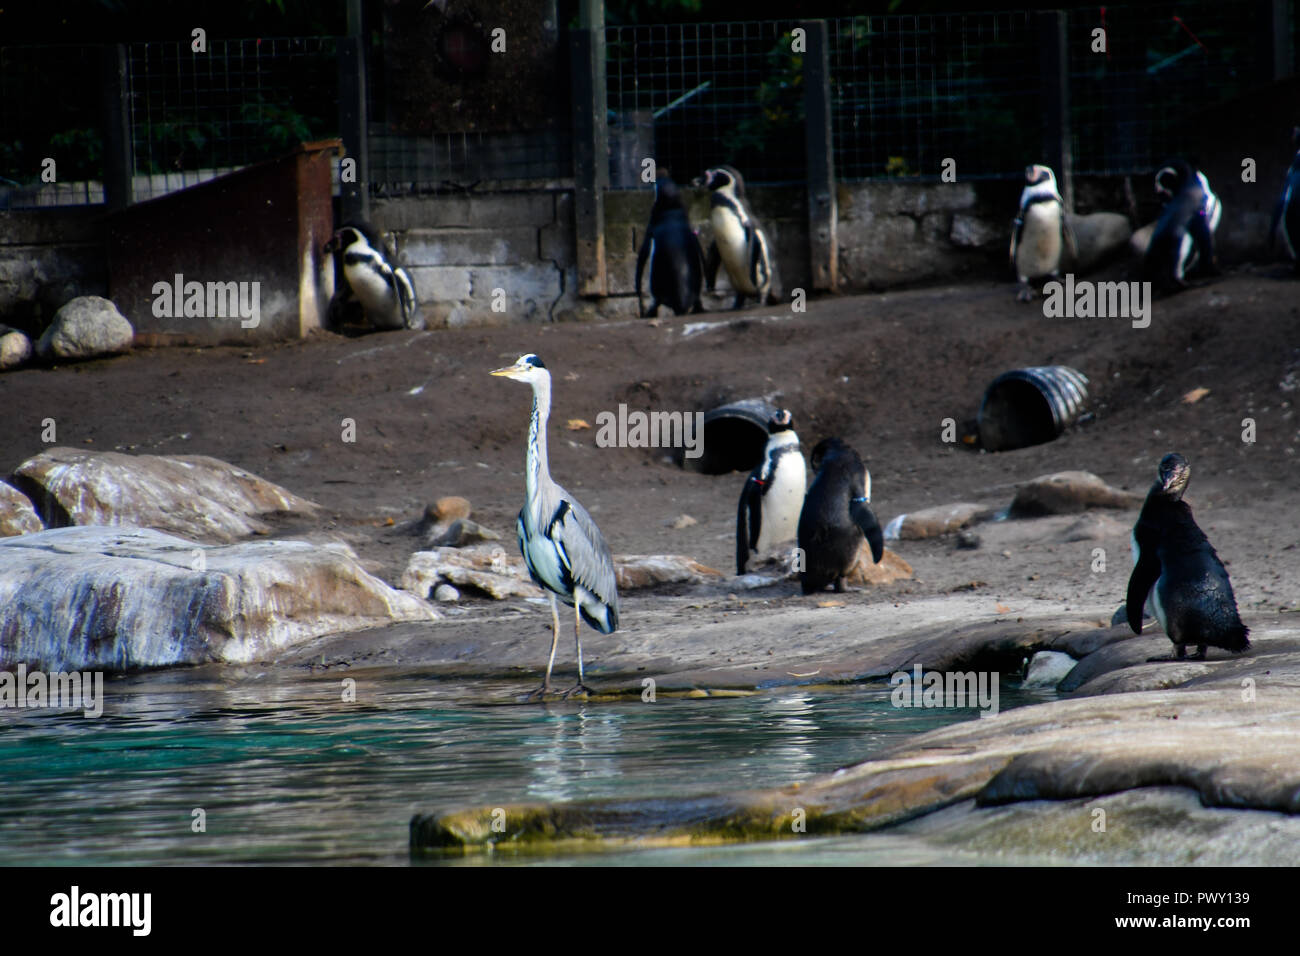 London, UK. 18th Oct 2018. Penguins and crane at ZLS London Zoo's Asiatic lions celebrate the advent of autumn with scented treat, London, UK. 18 October 2018. 18 October 2018. Credit: Picture Capital/Alamy Live News - Stock Image